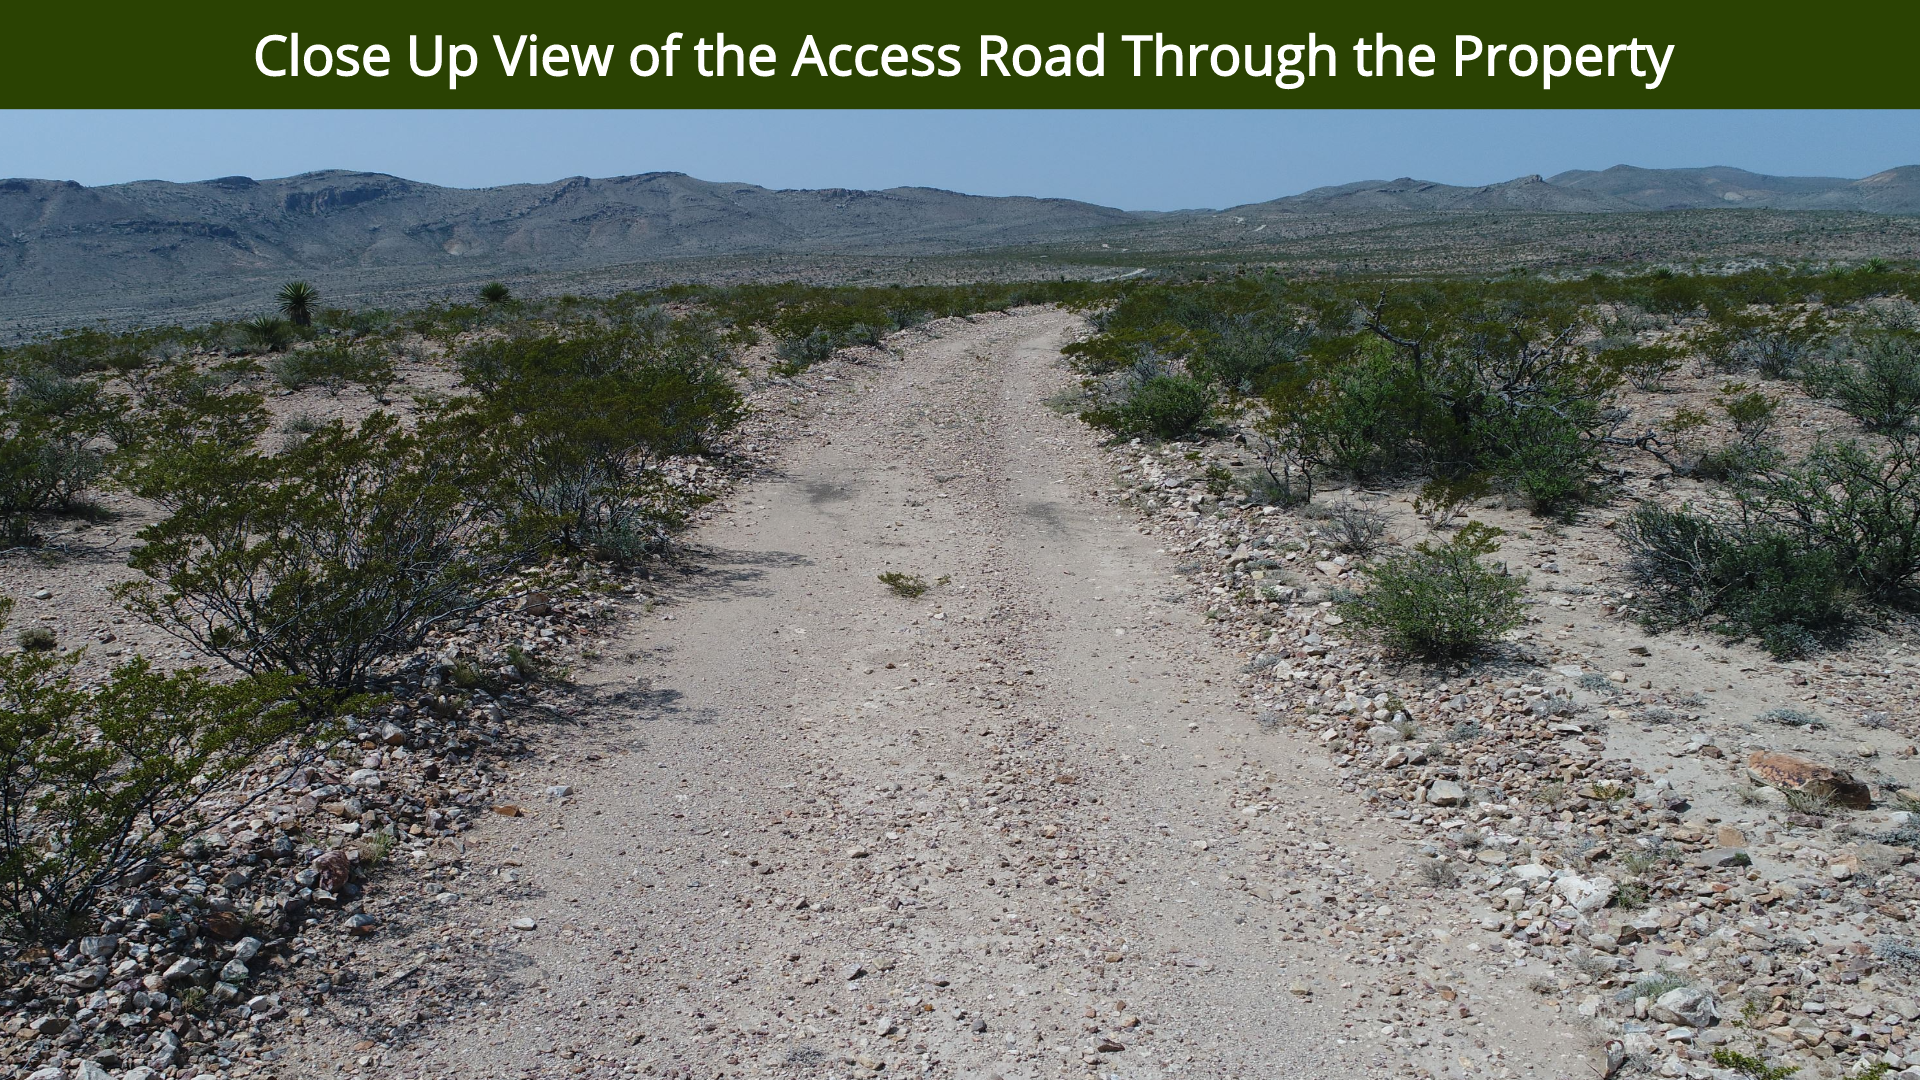 Close Up View of the Access Road Through